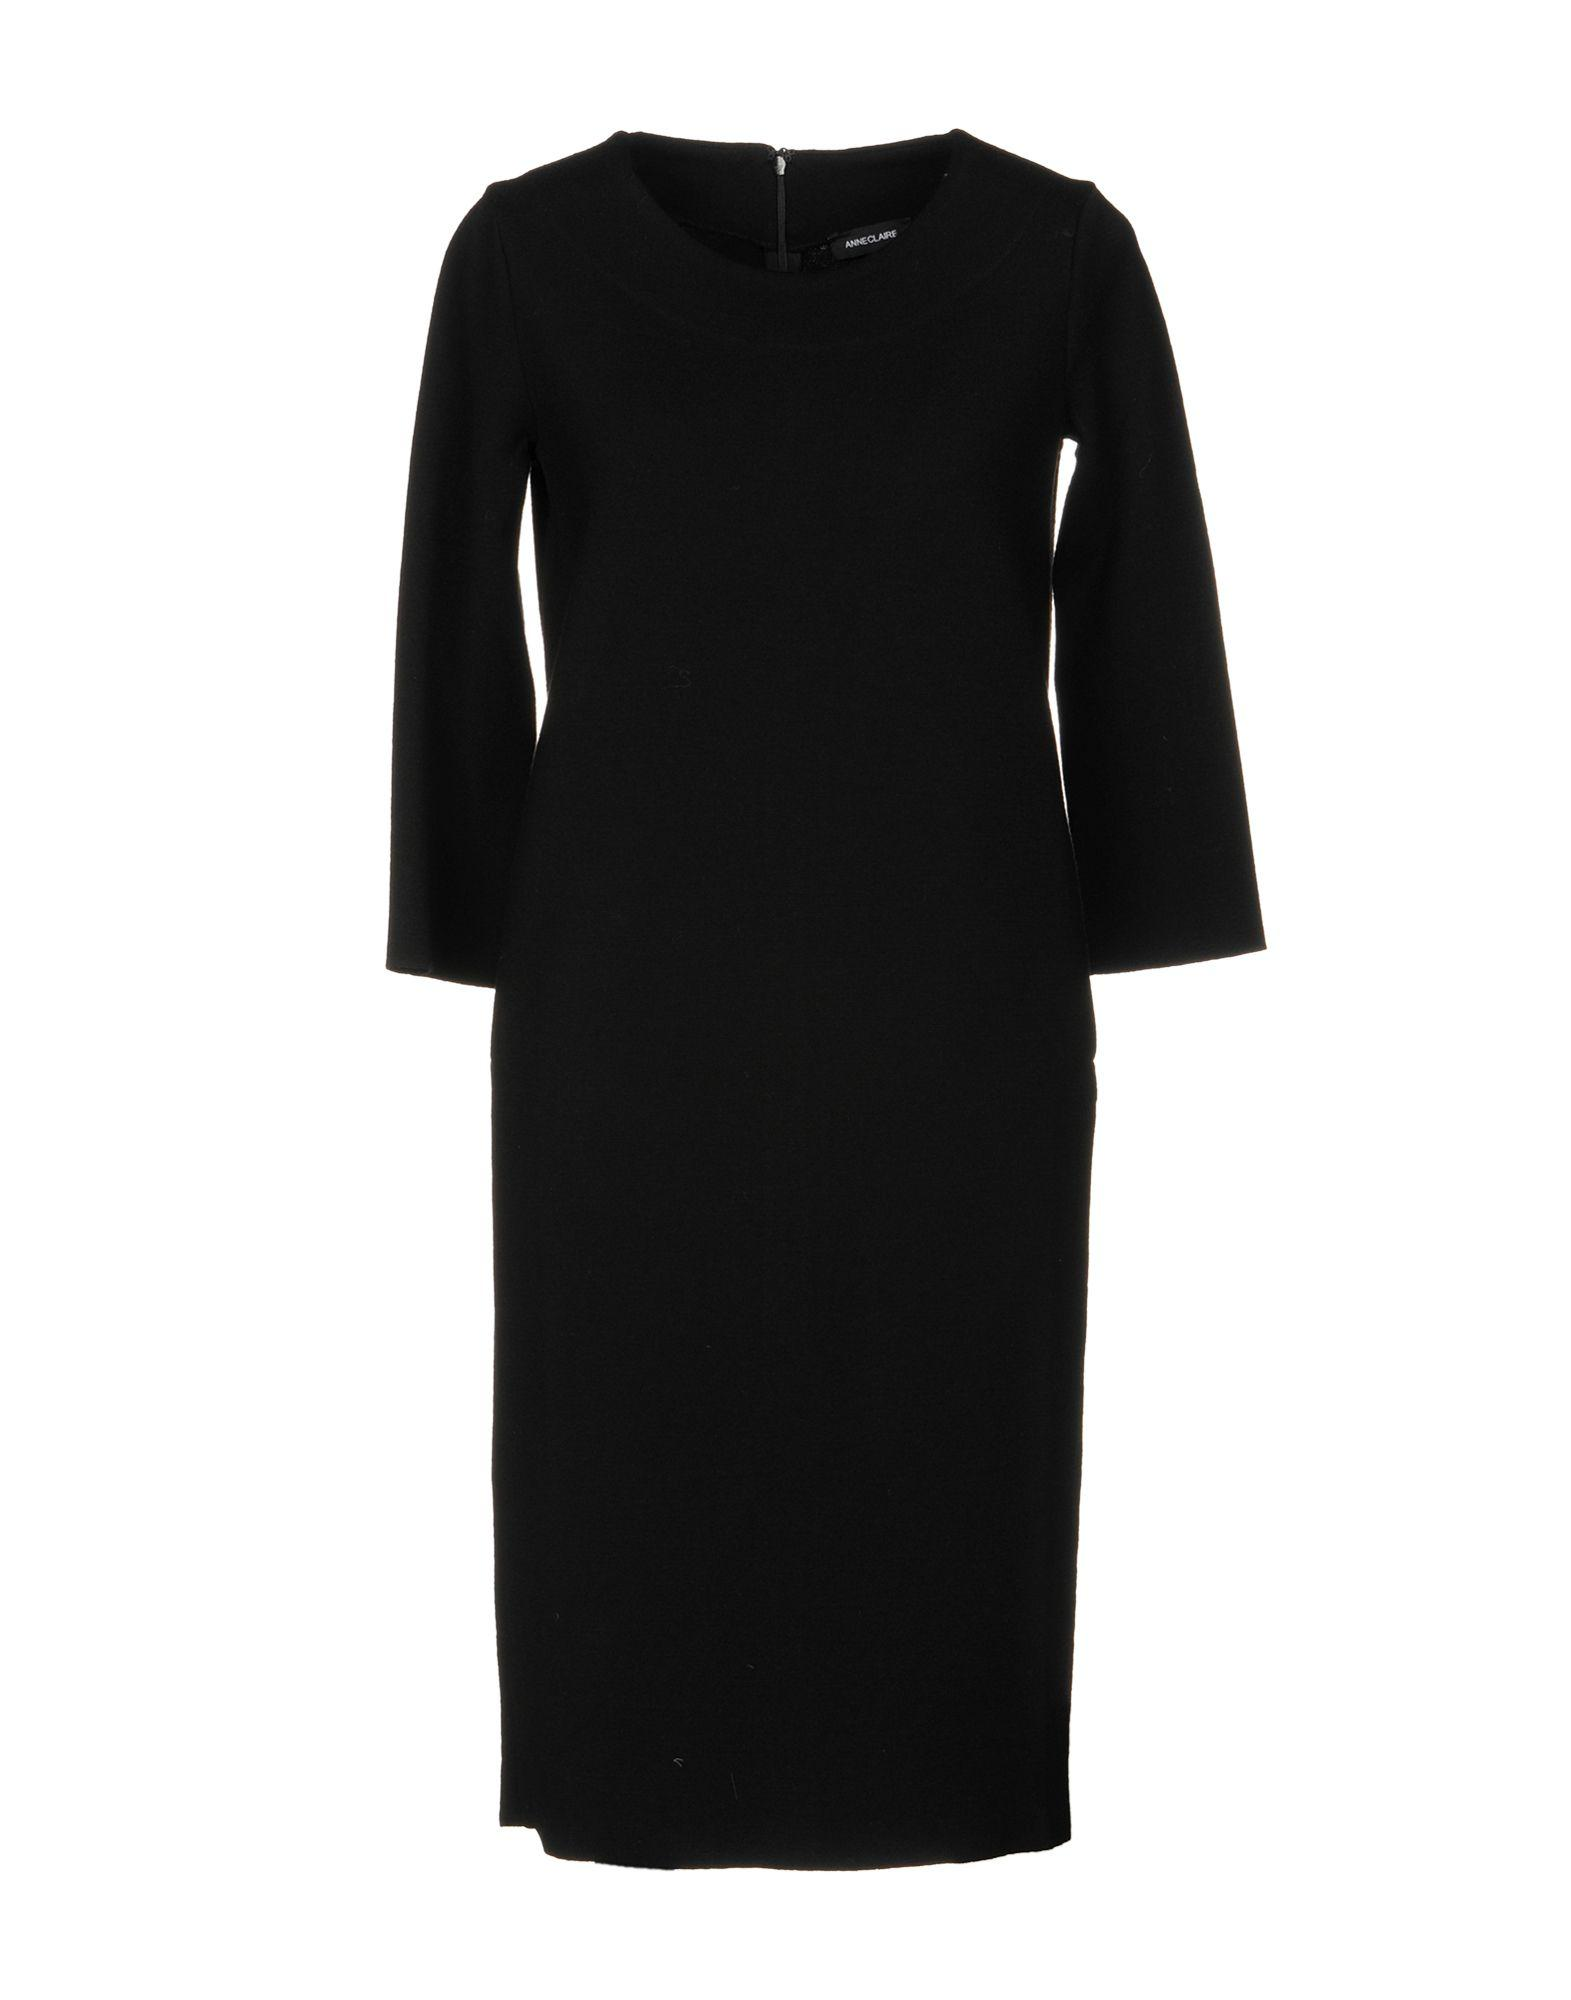 Anneclaire Knee-length Dress In Black